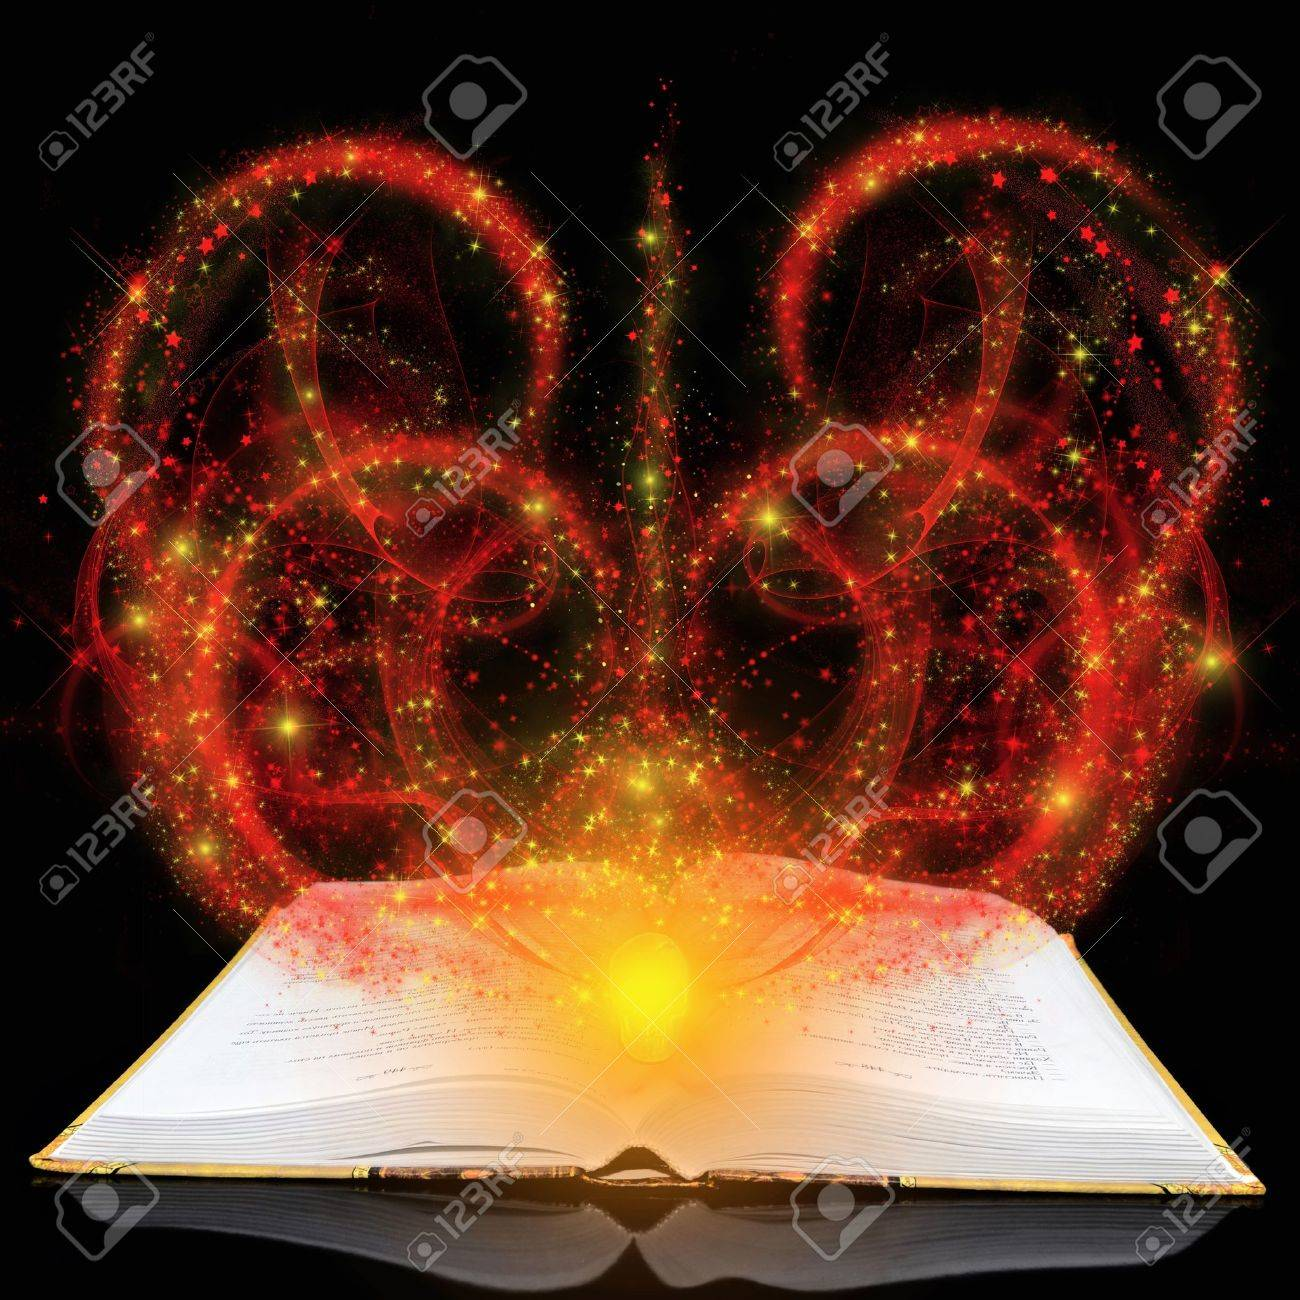 Magic book with red splashes on a black background Stock Photo - 13478991